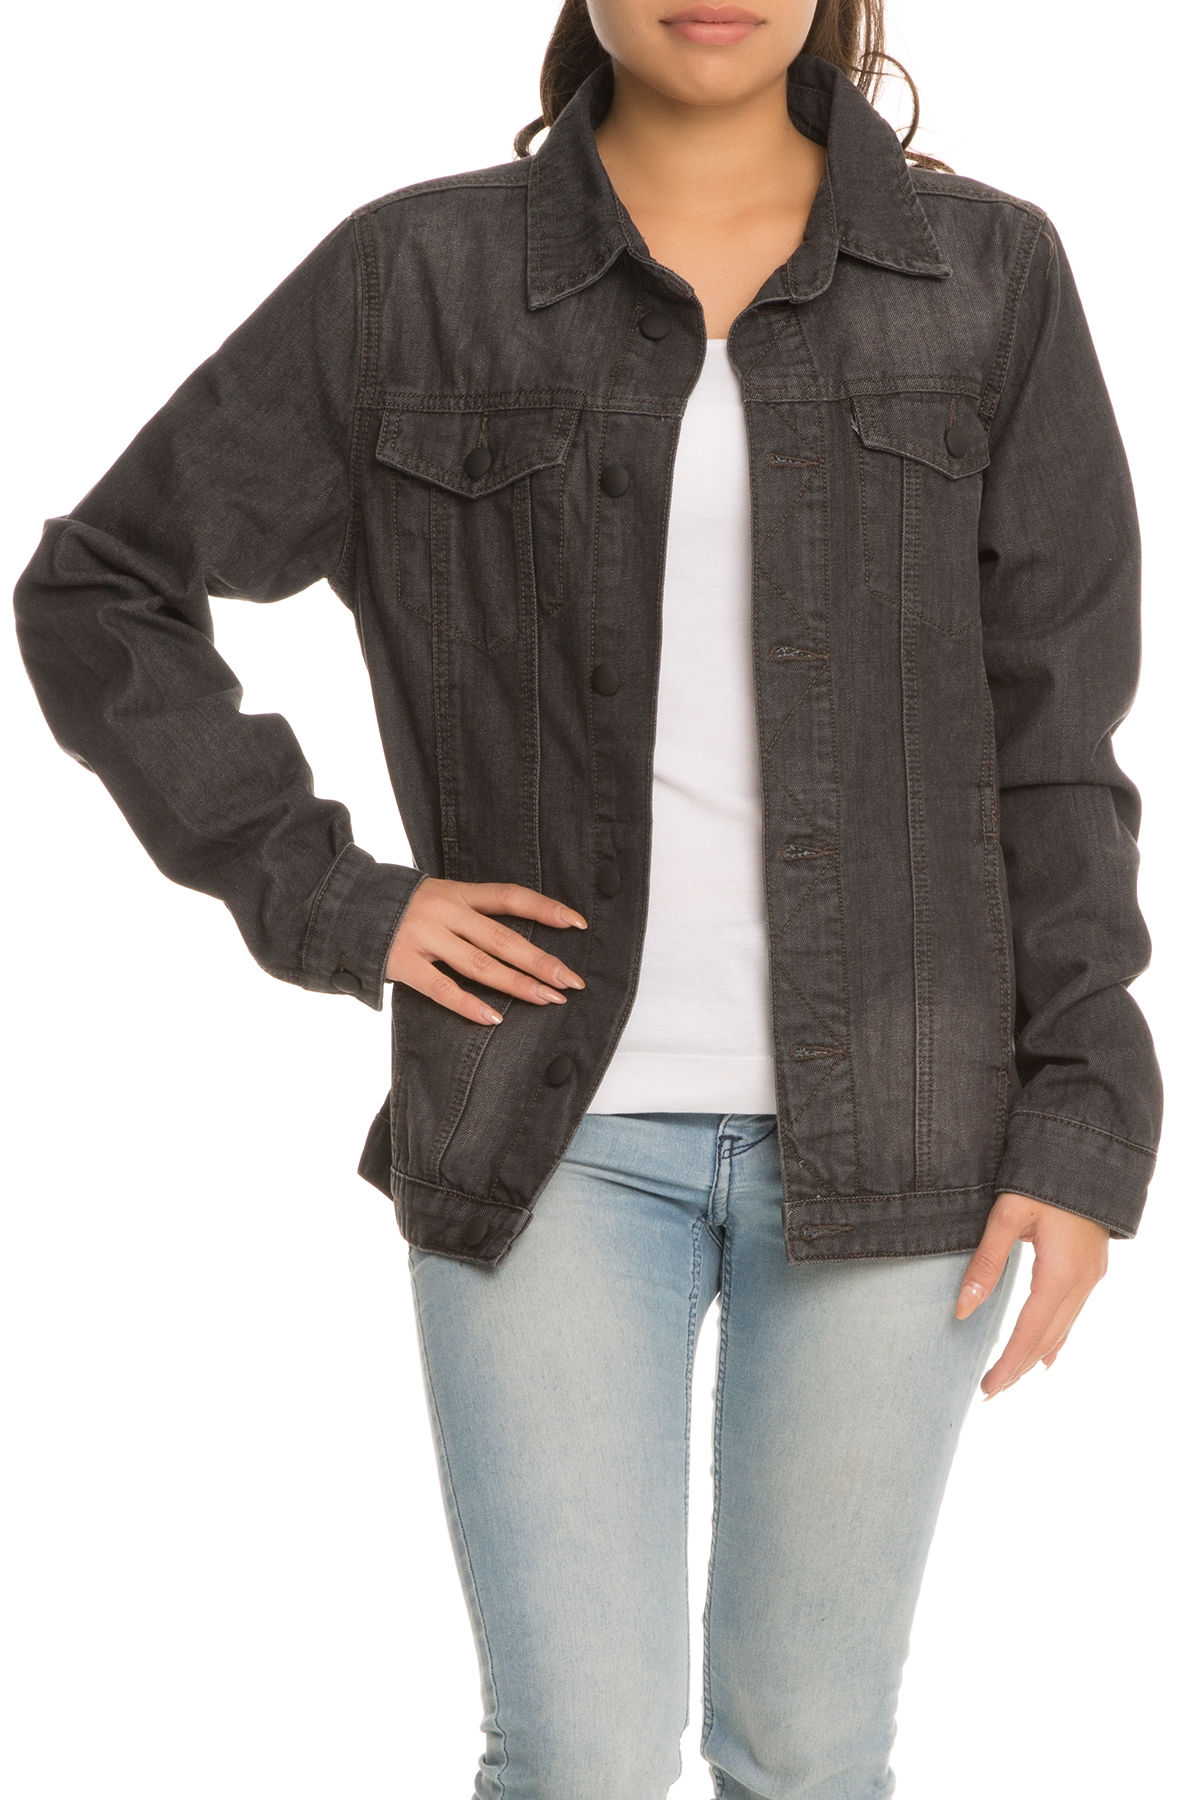 The Tripled Womens Bleached Jean Jacket in Black